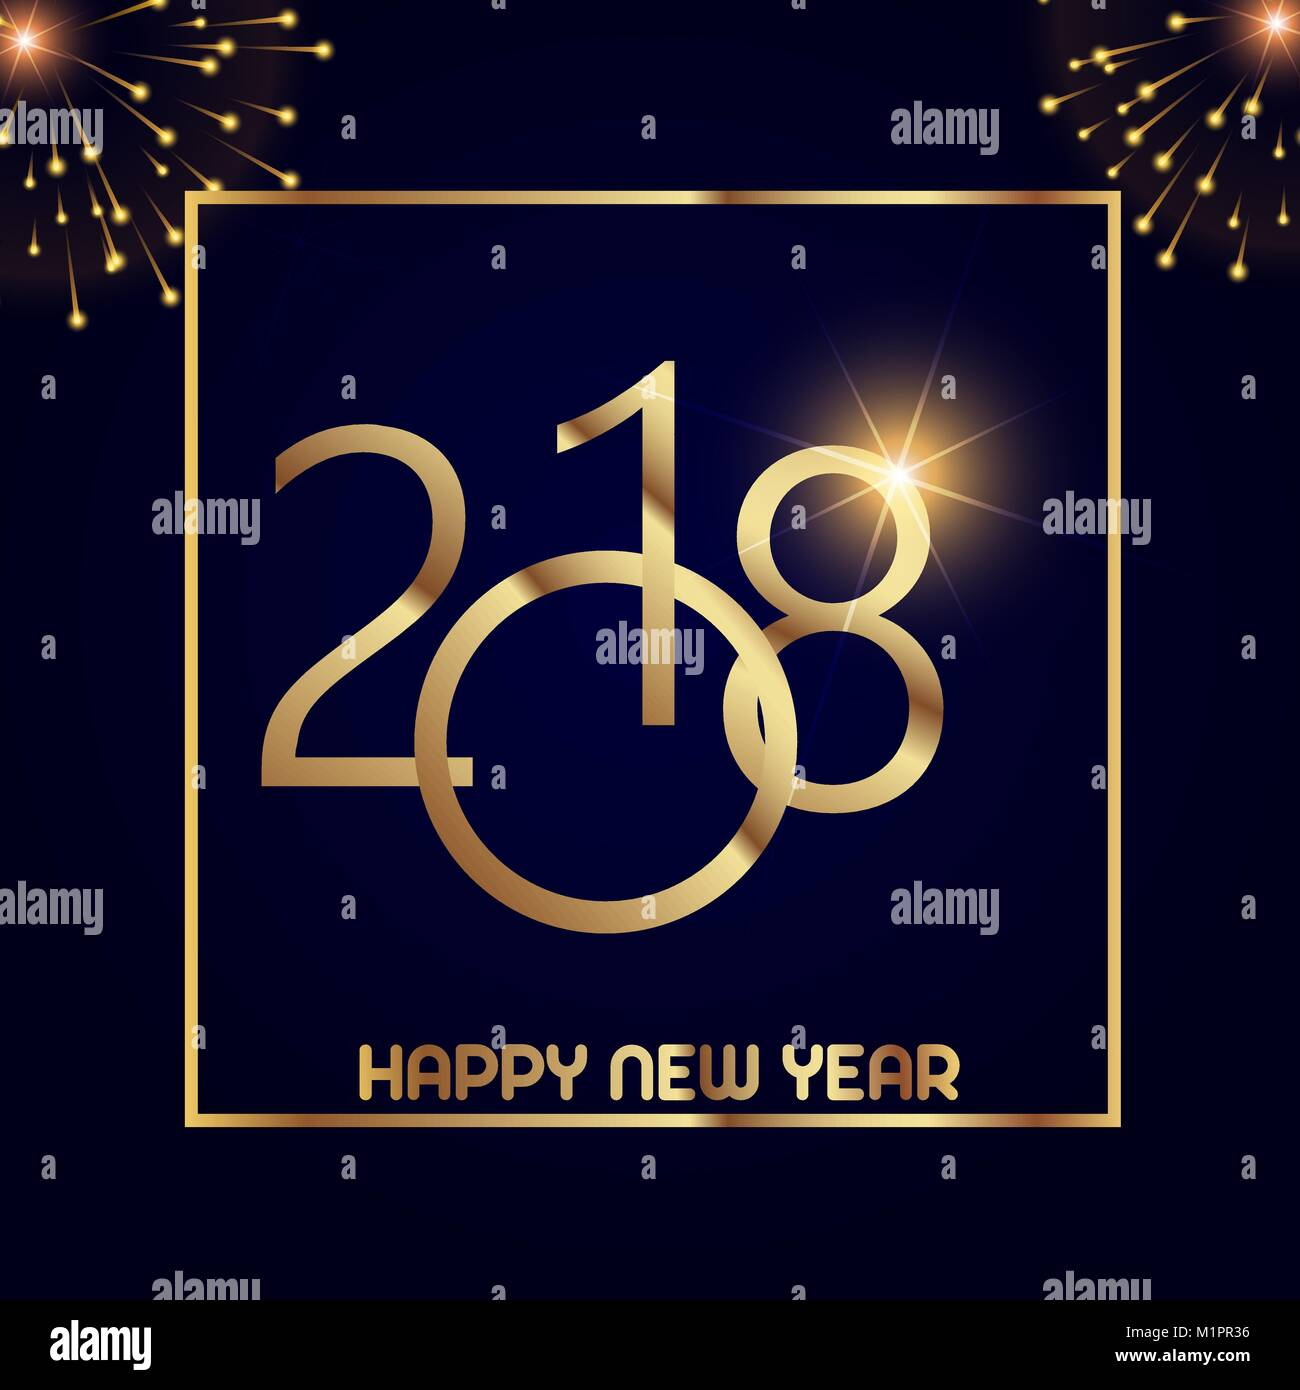 happy new year greeting card with shining gold text and firewolks on black background 2018 vector